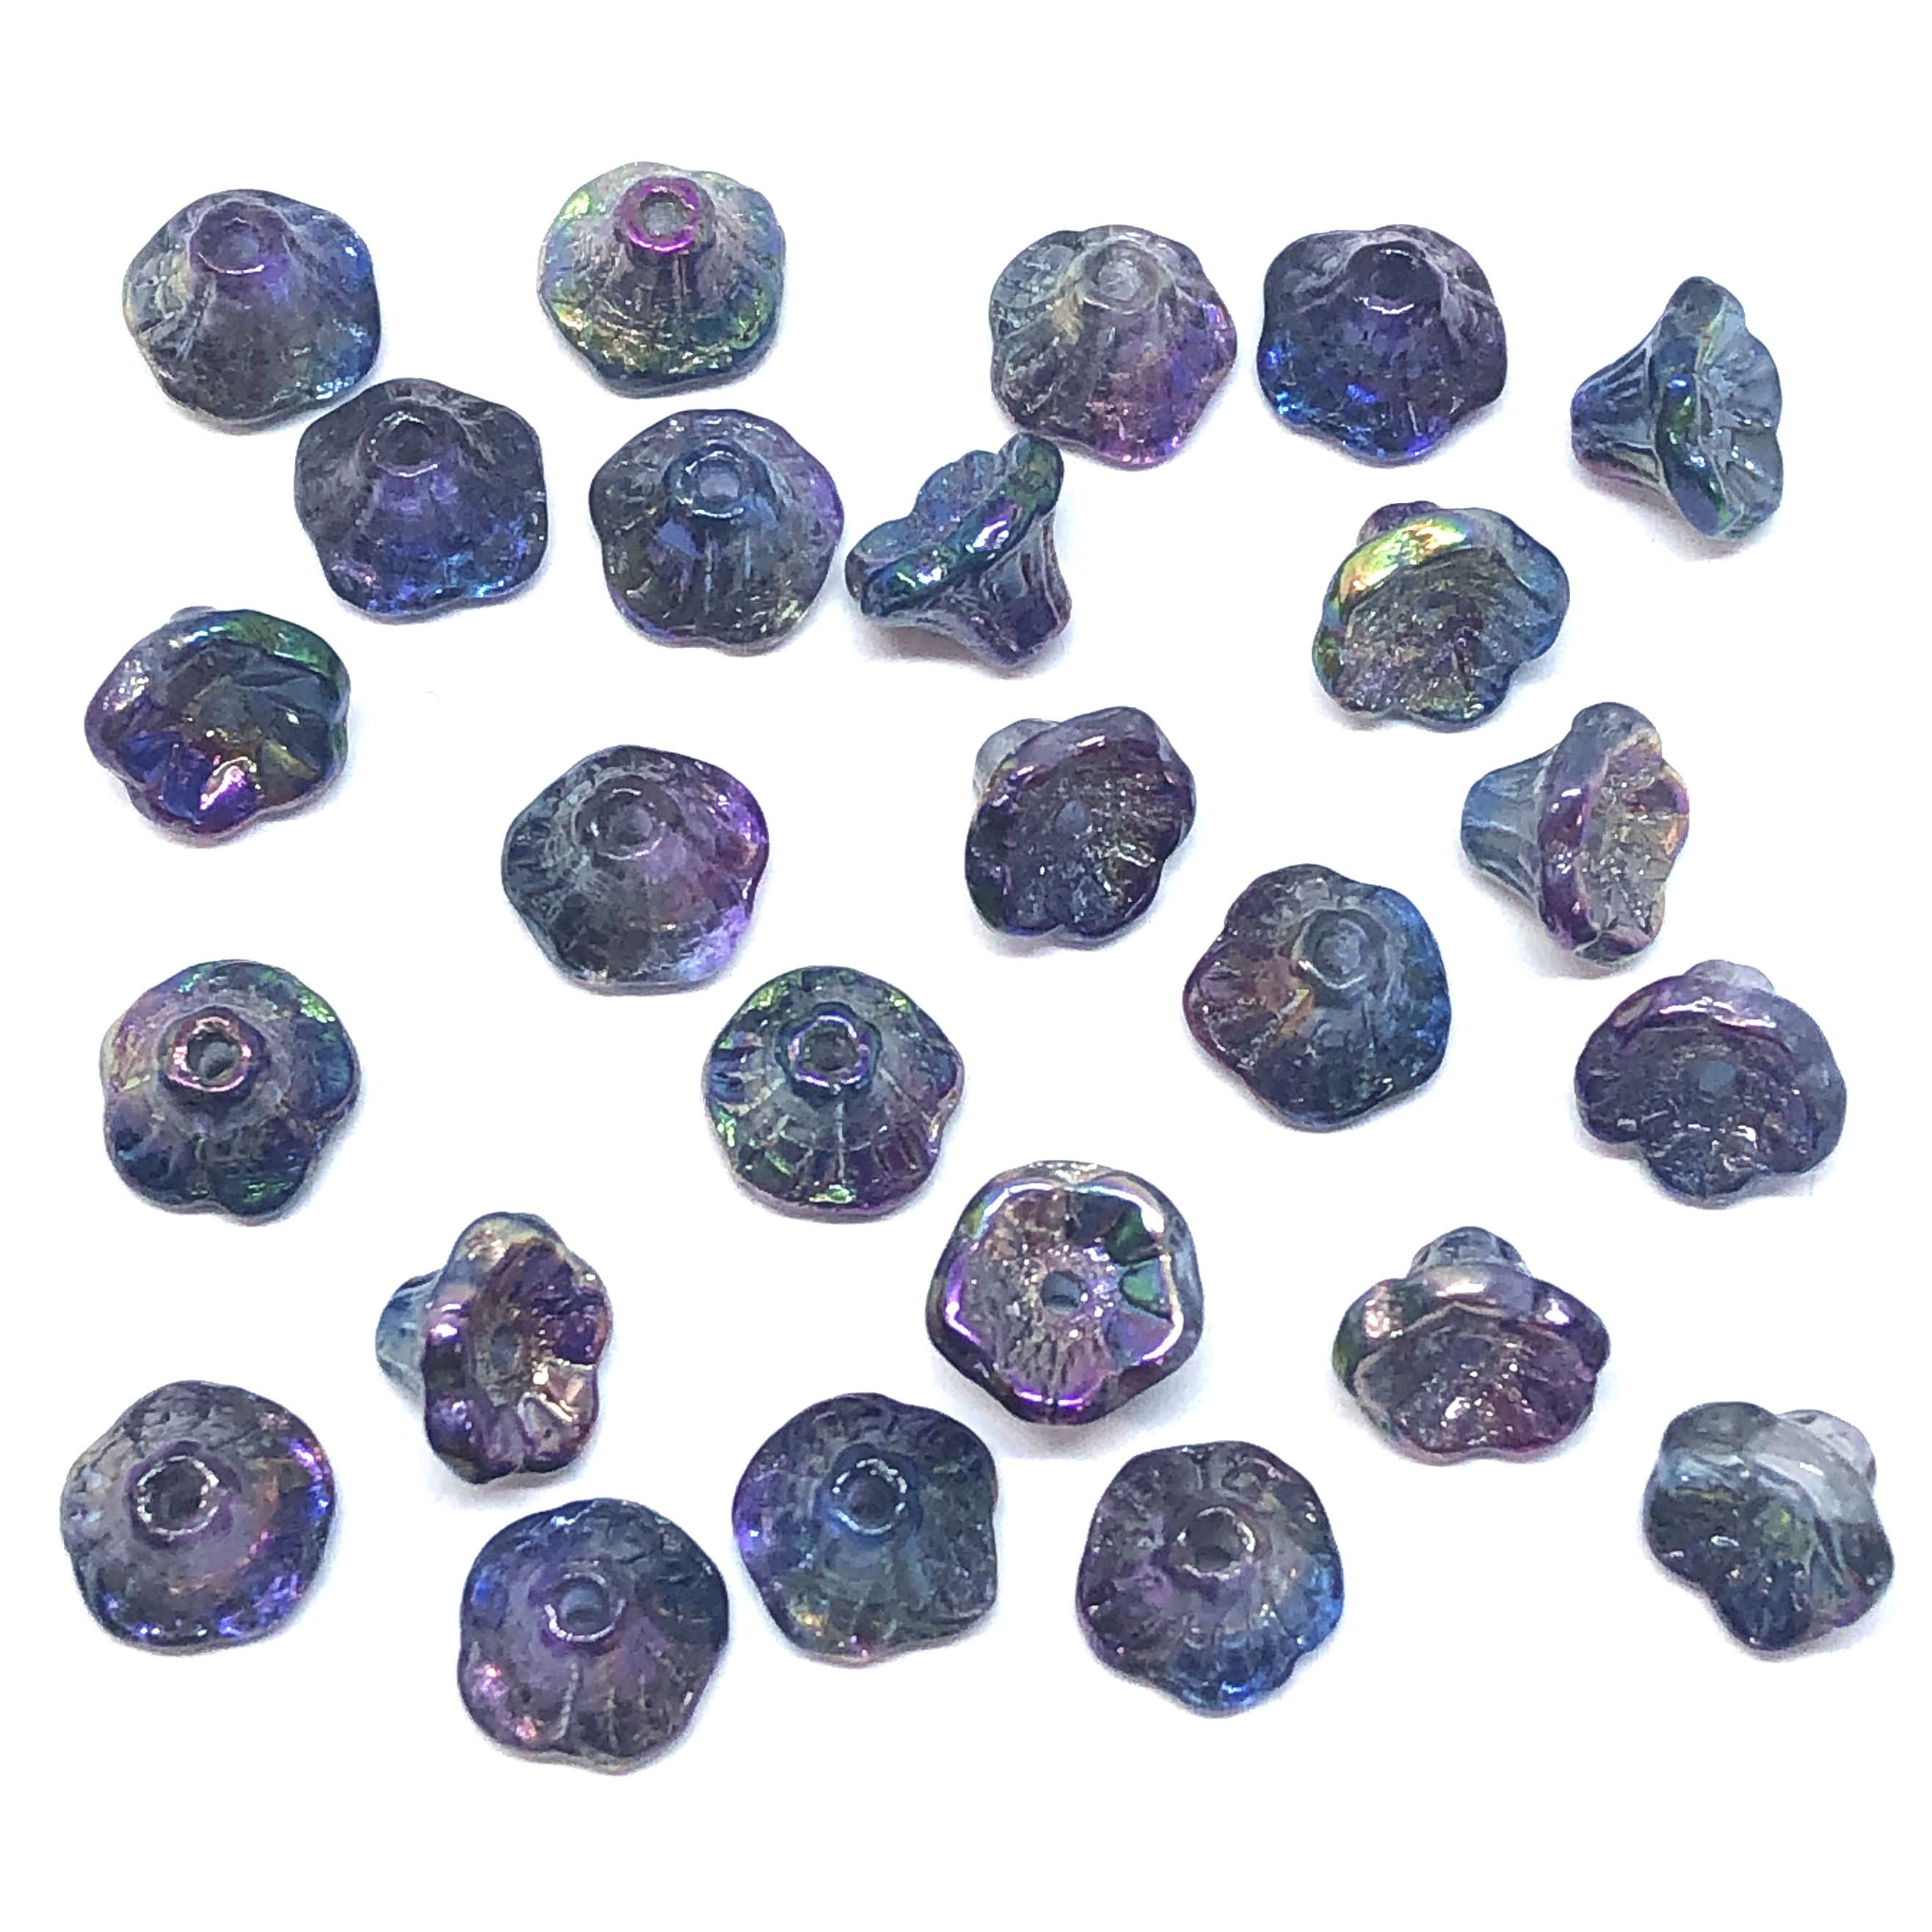 Mini Bell Flower Beads, Czech Glass Beads, 09566, flower cup beads, mermaid dreams, bell flowers, 5x7mm, assorted beads, beads, glass beads, iridescent beads, flowers, floral beads, beading supplies, jewelry supplies, blue, ab, purple